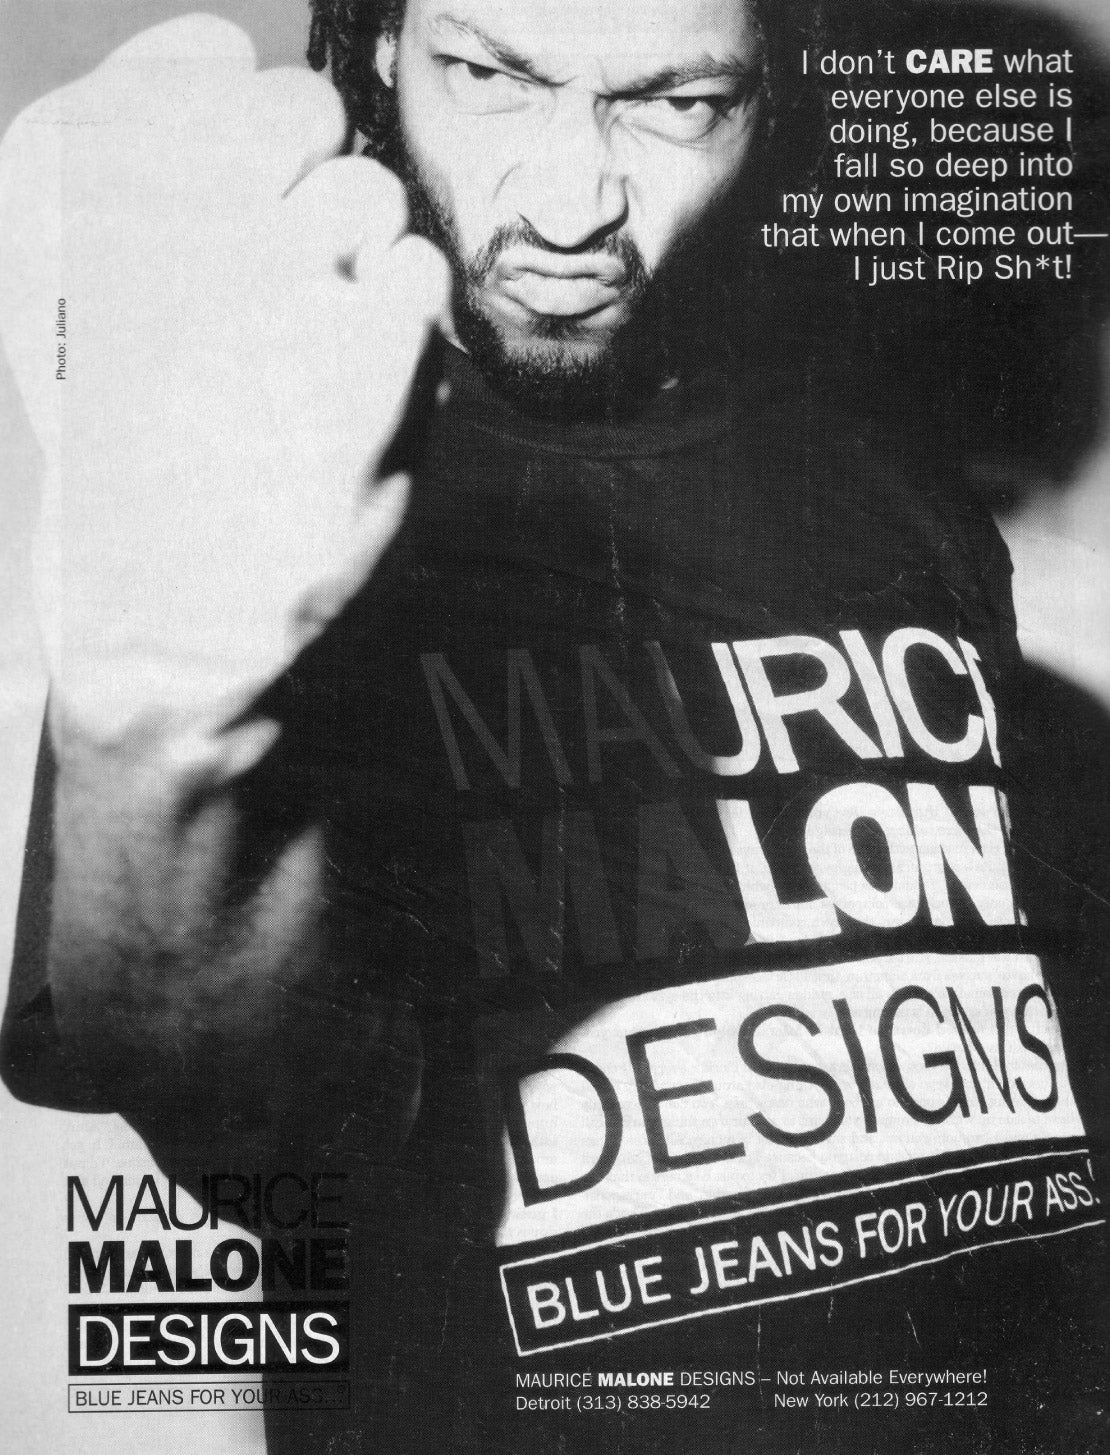 Fashion designer Maurice Malone appears in his own advertisement - Rip Shit